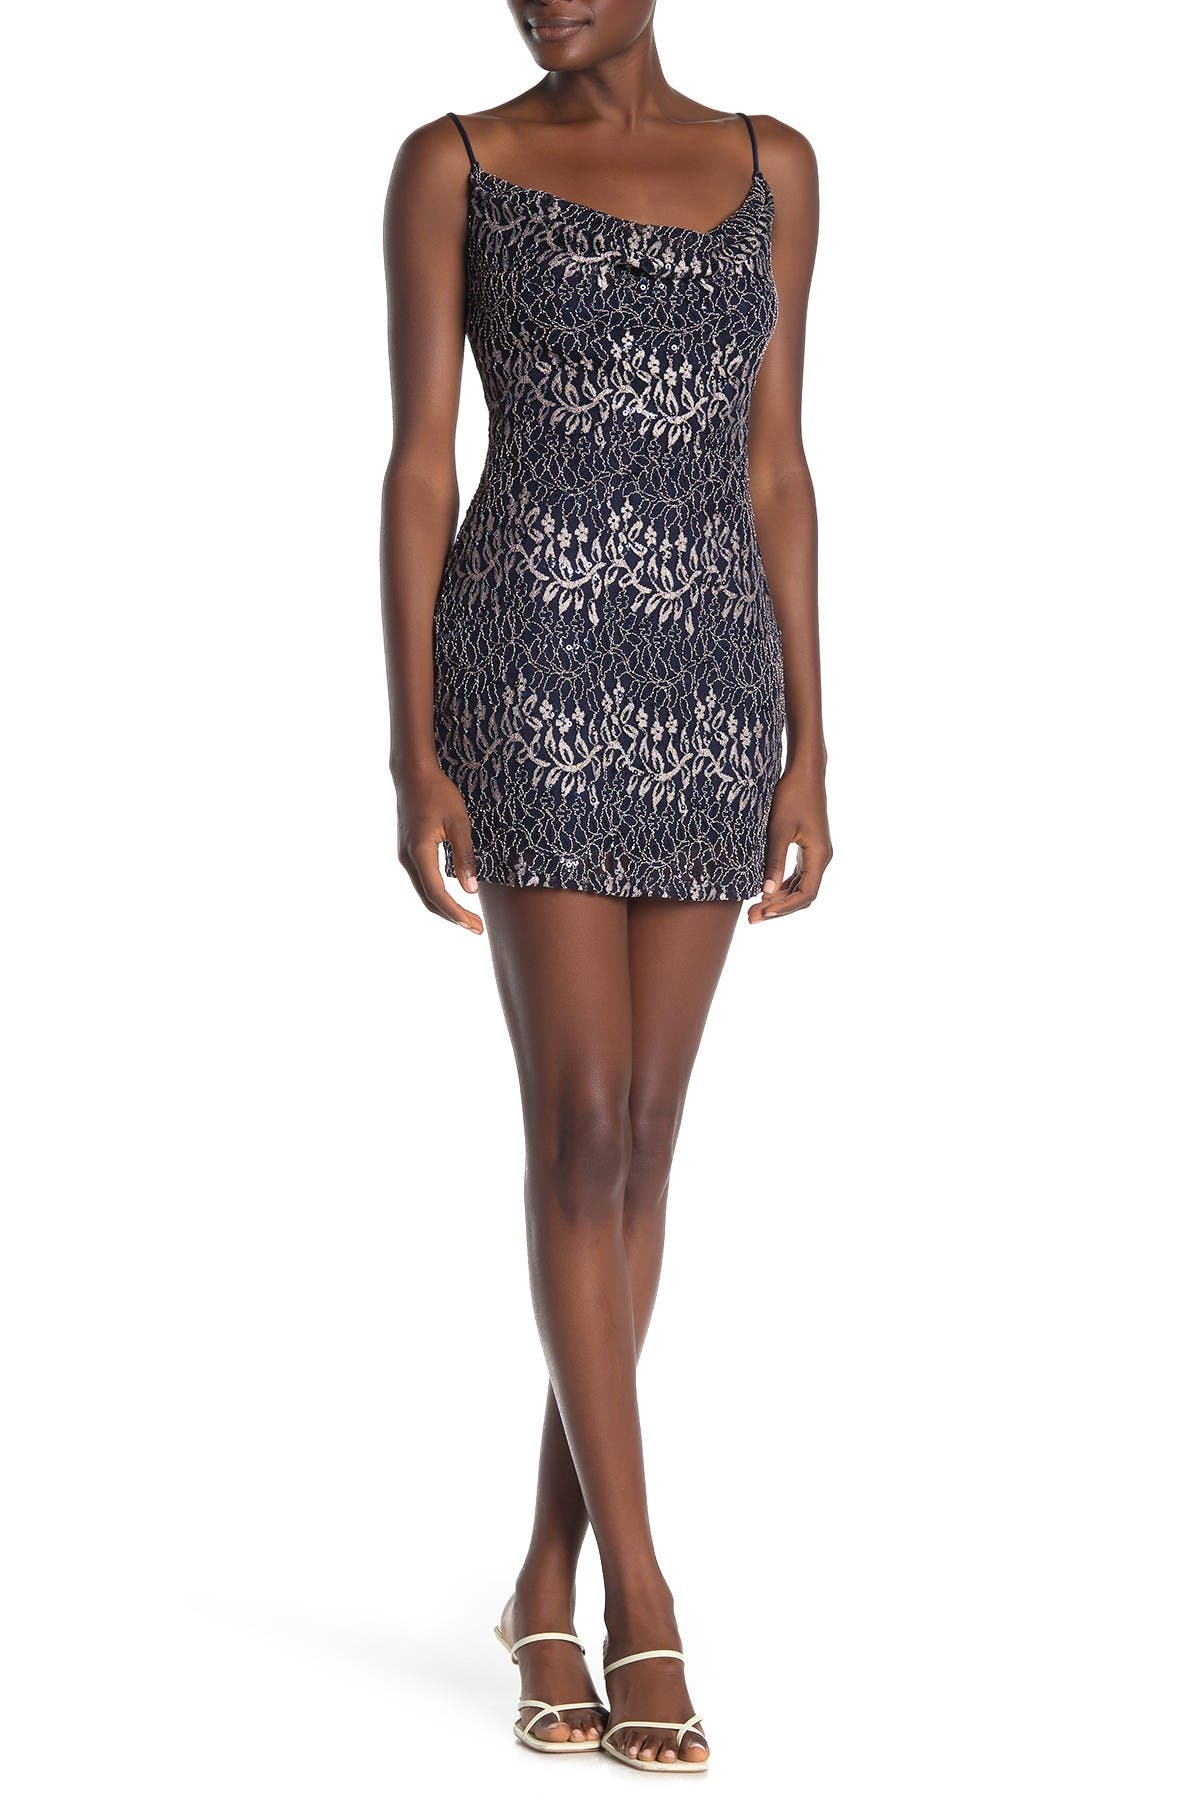 Image of JUMP Vine Sequin Lace Cowl Mini Dress